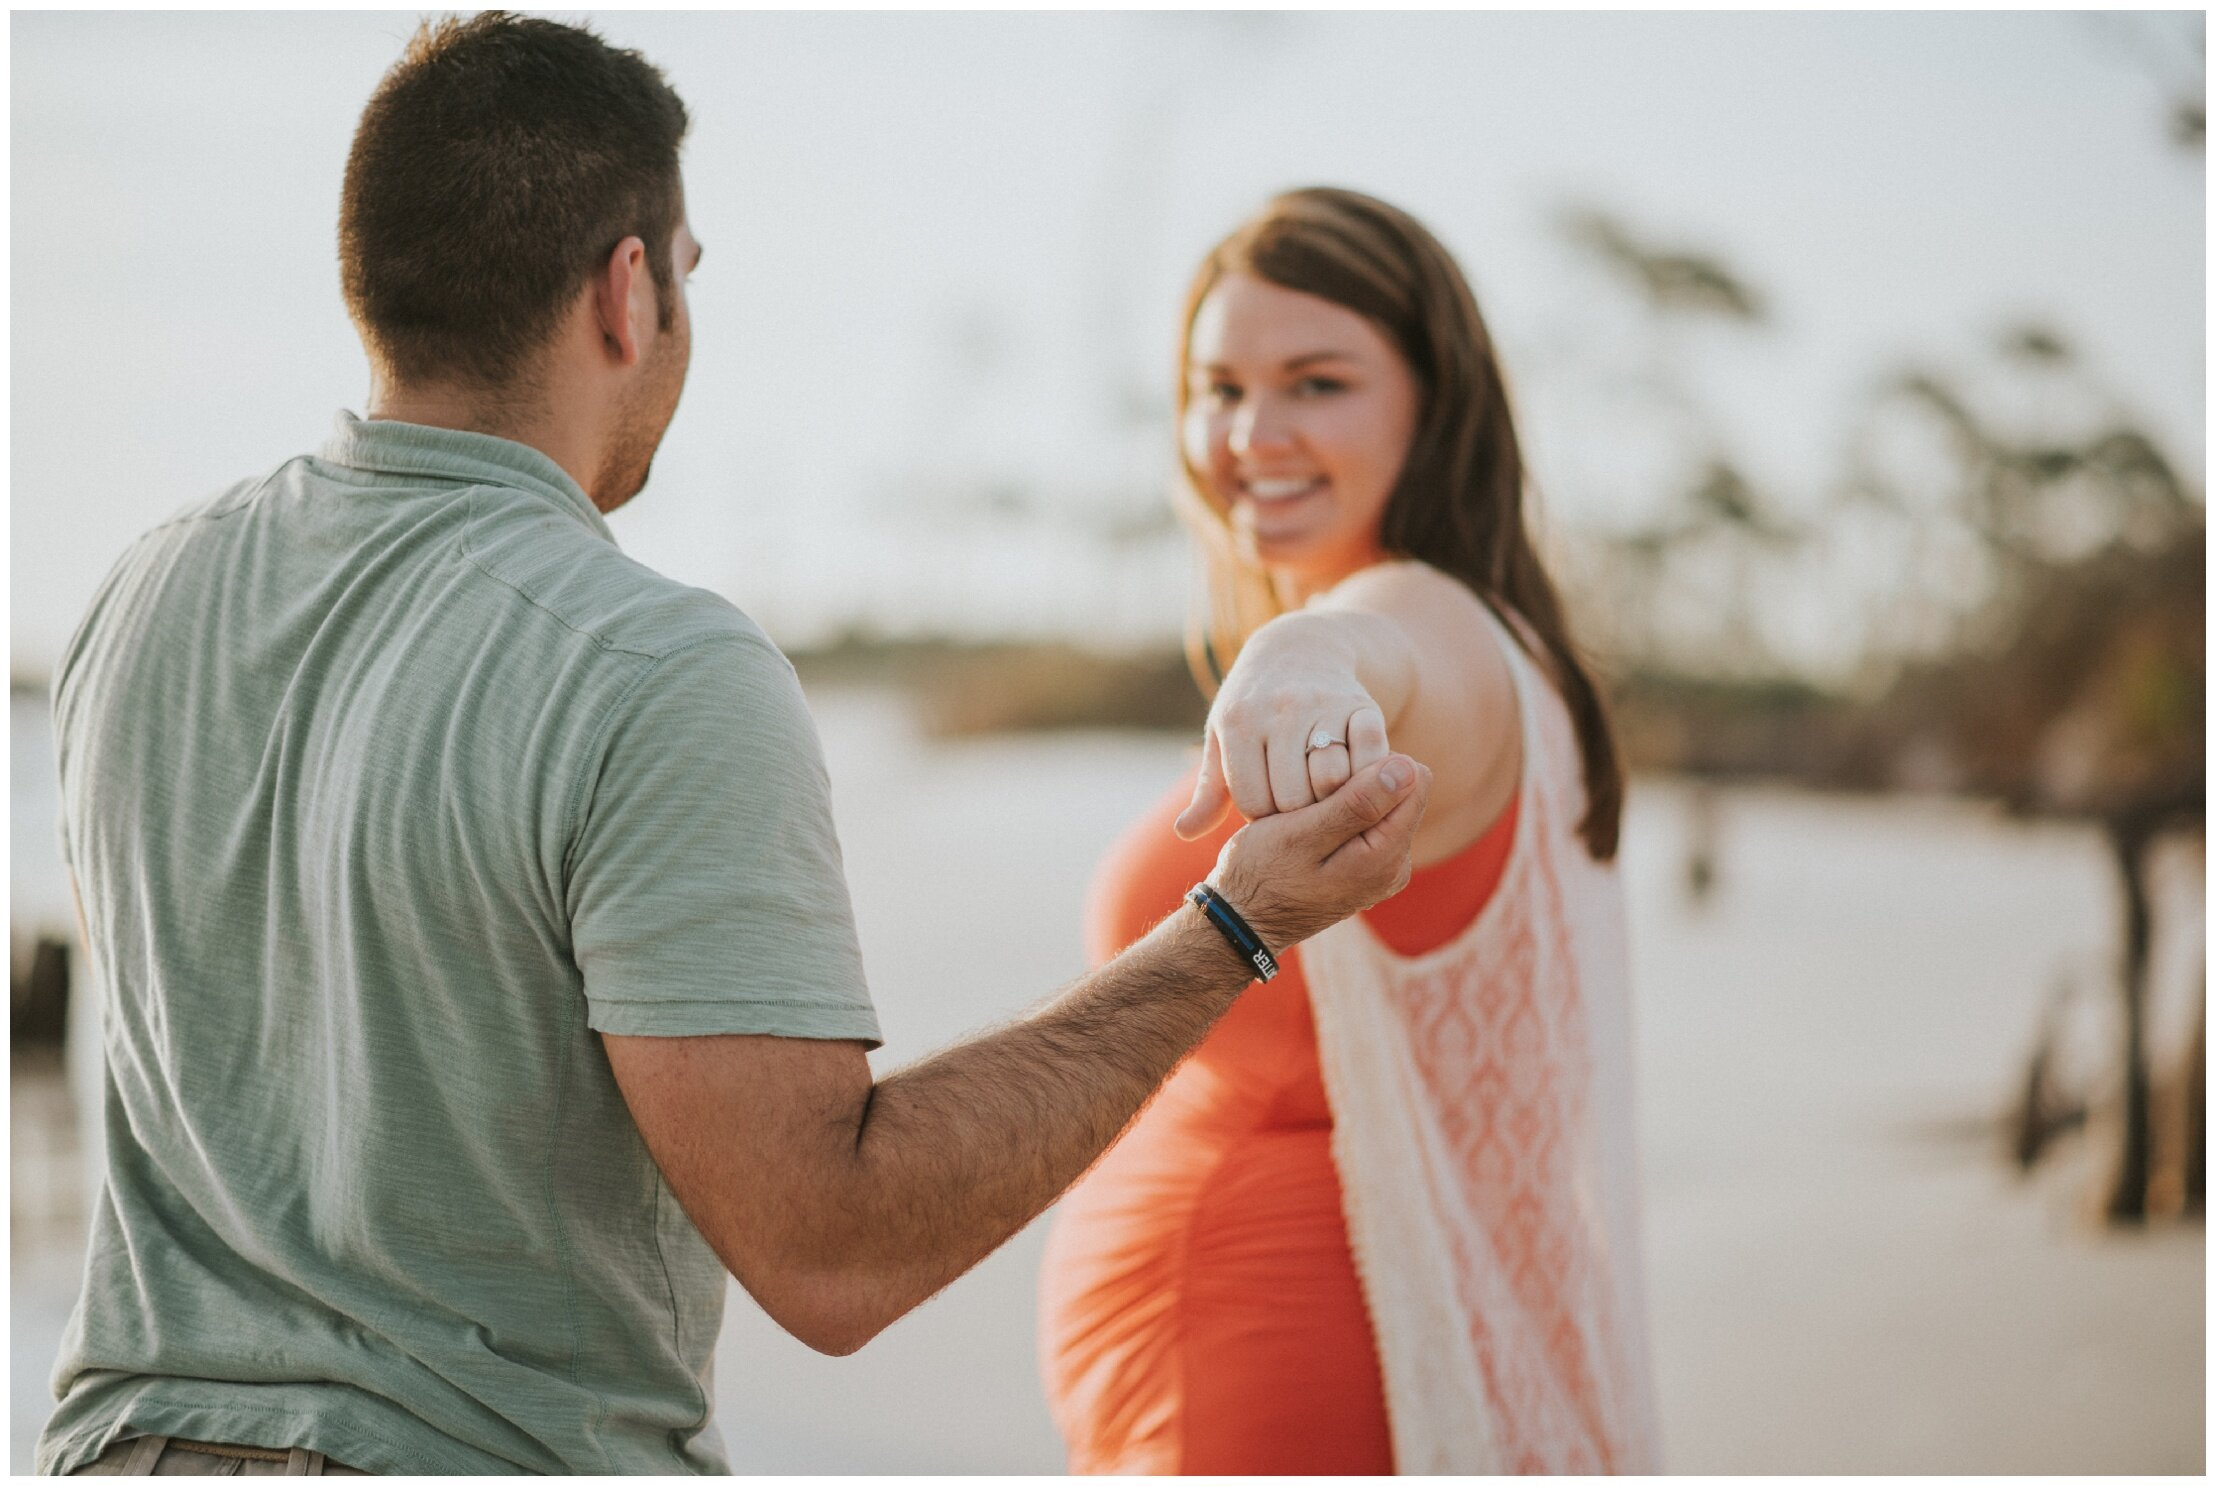 Proposal-Engagement-Photographer-Love-Mary-Beth-Photography